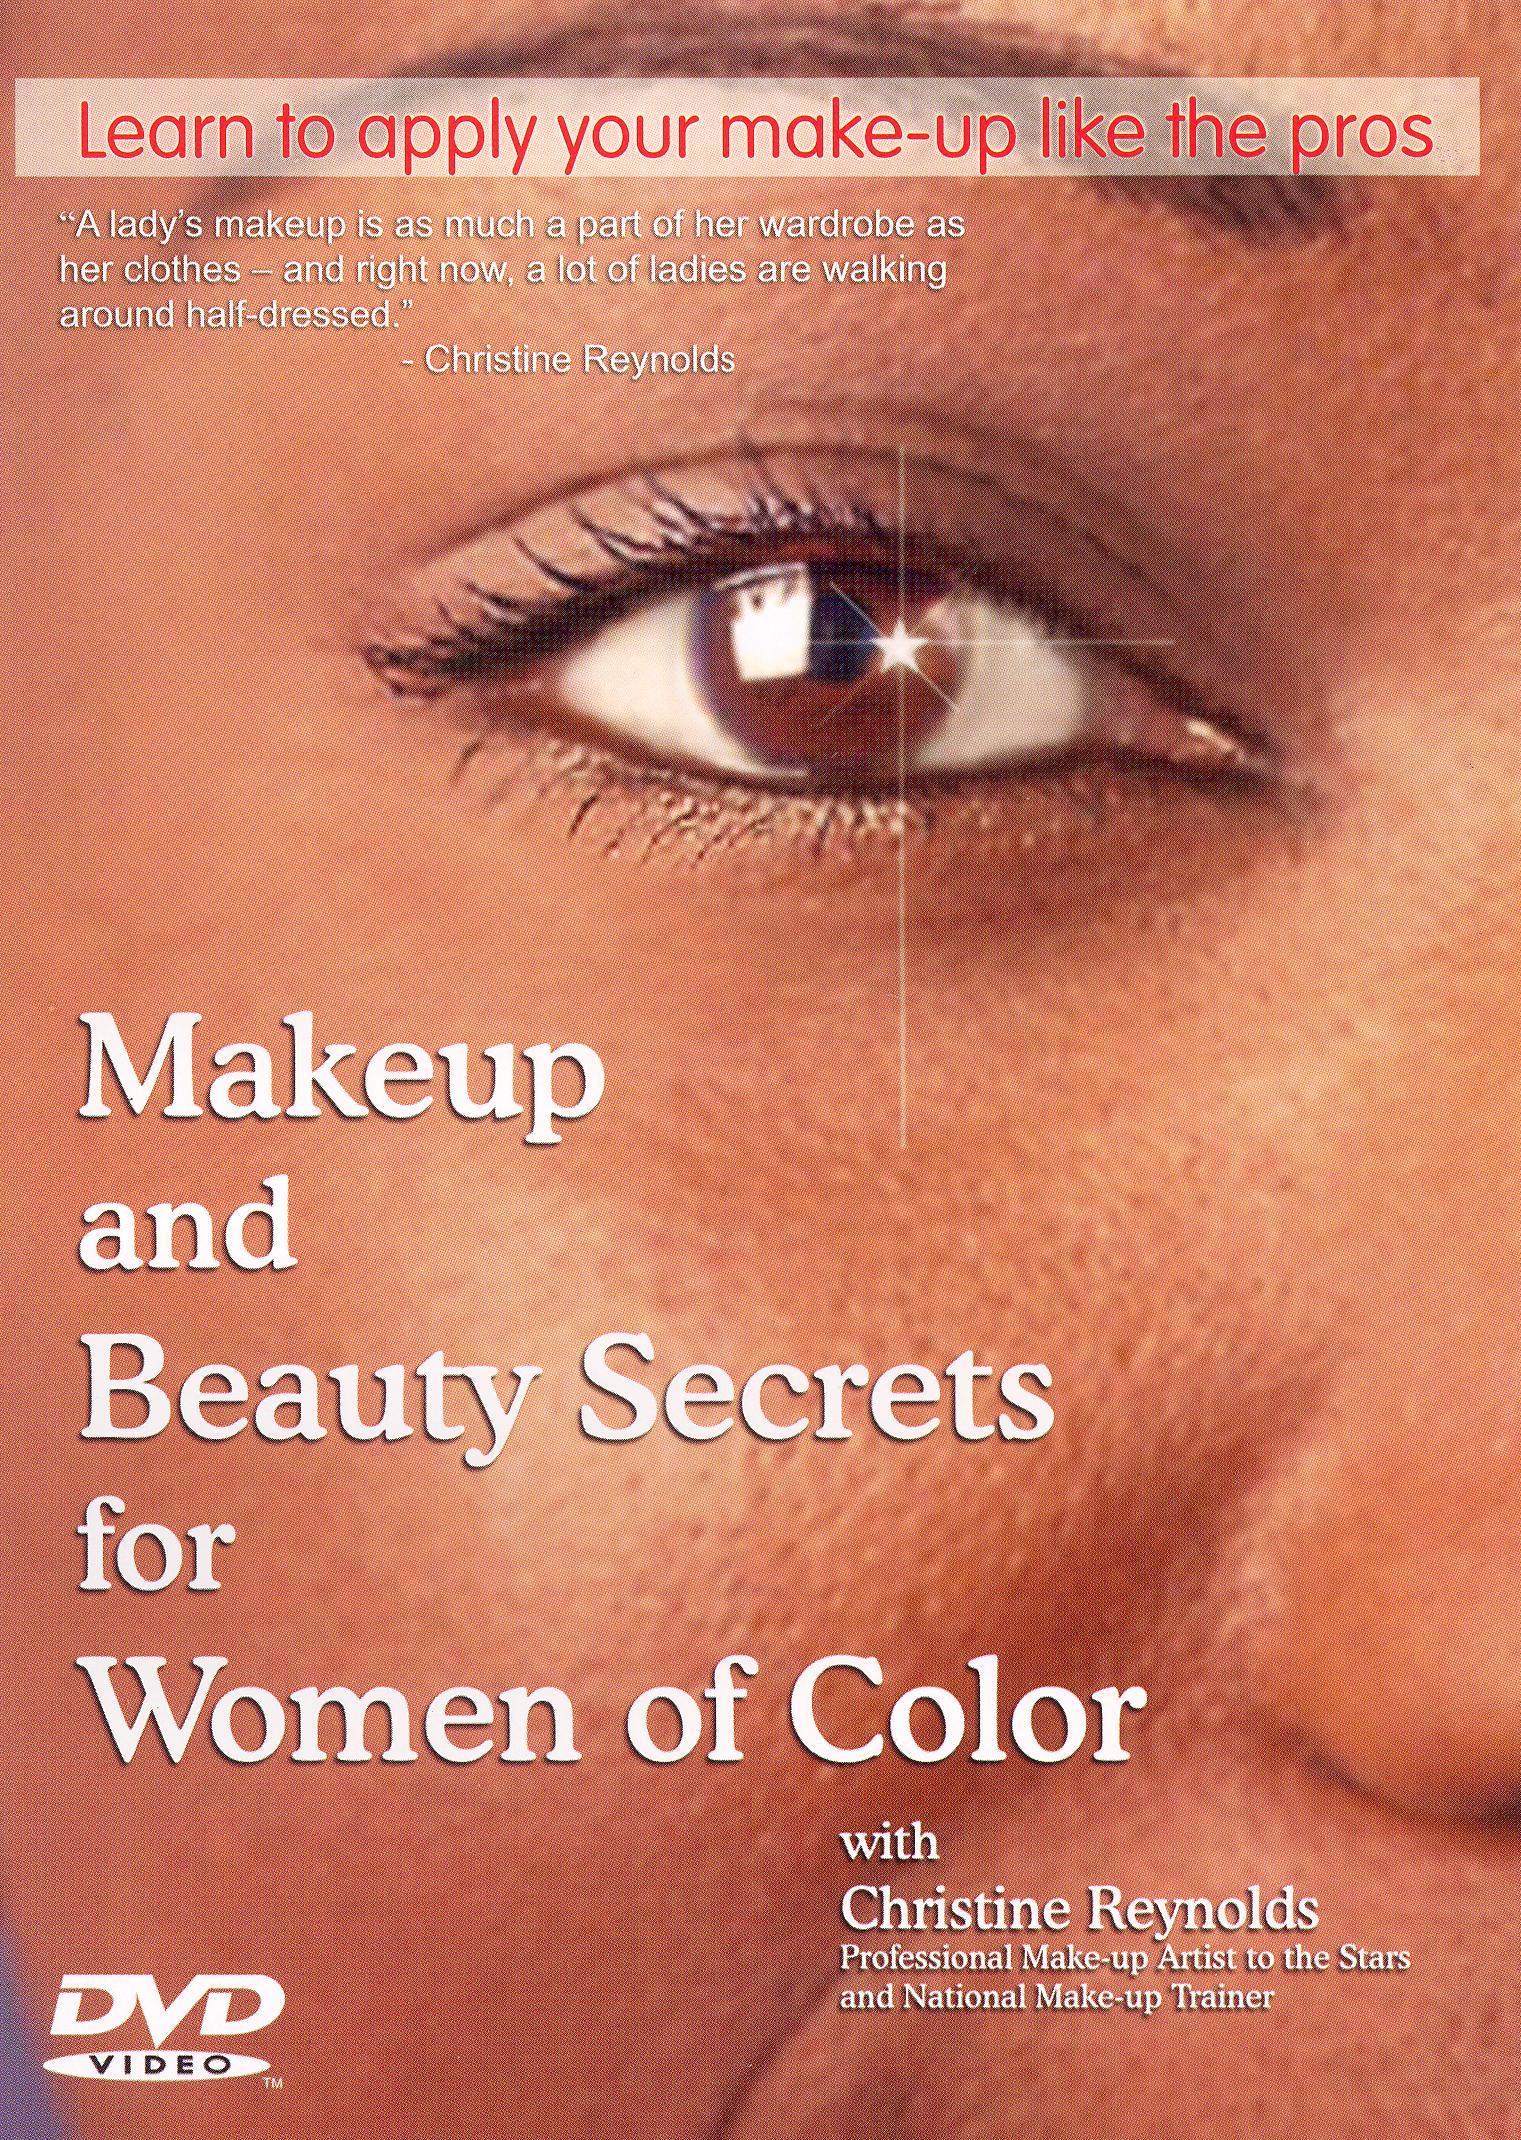 Makeup and Beauty Secrets for Women of Color with Christine Reynolds [Instructio: Makeup and Beauty S